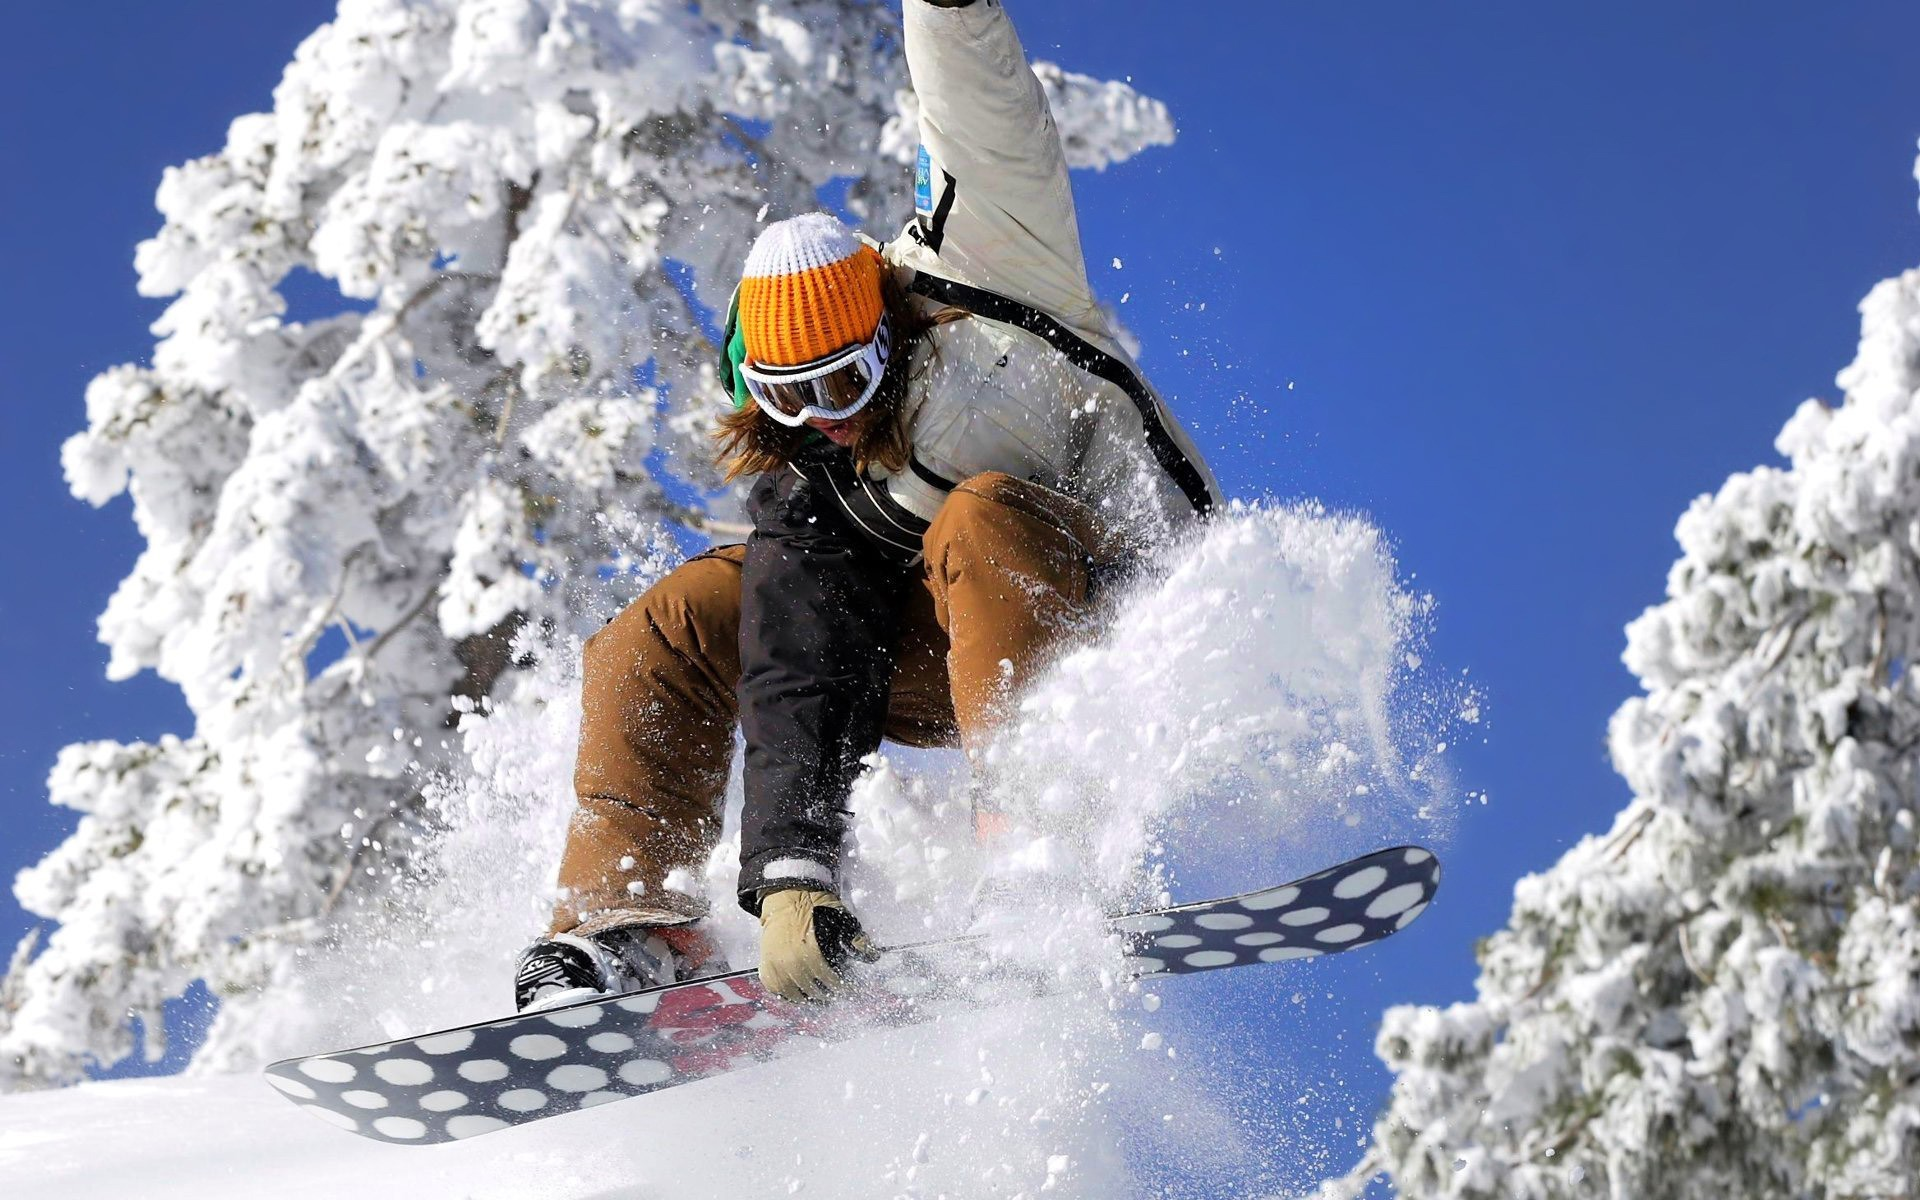 snow Snowboarding HD Wallpaper